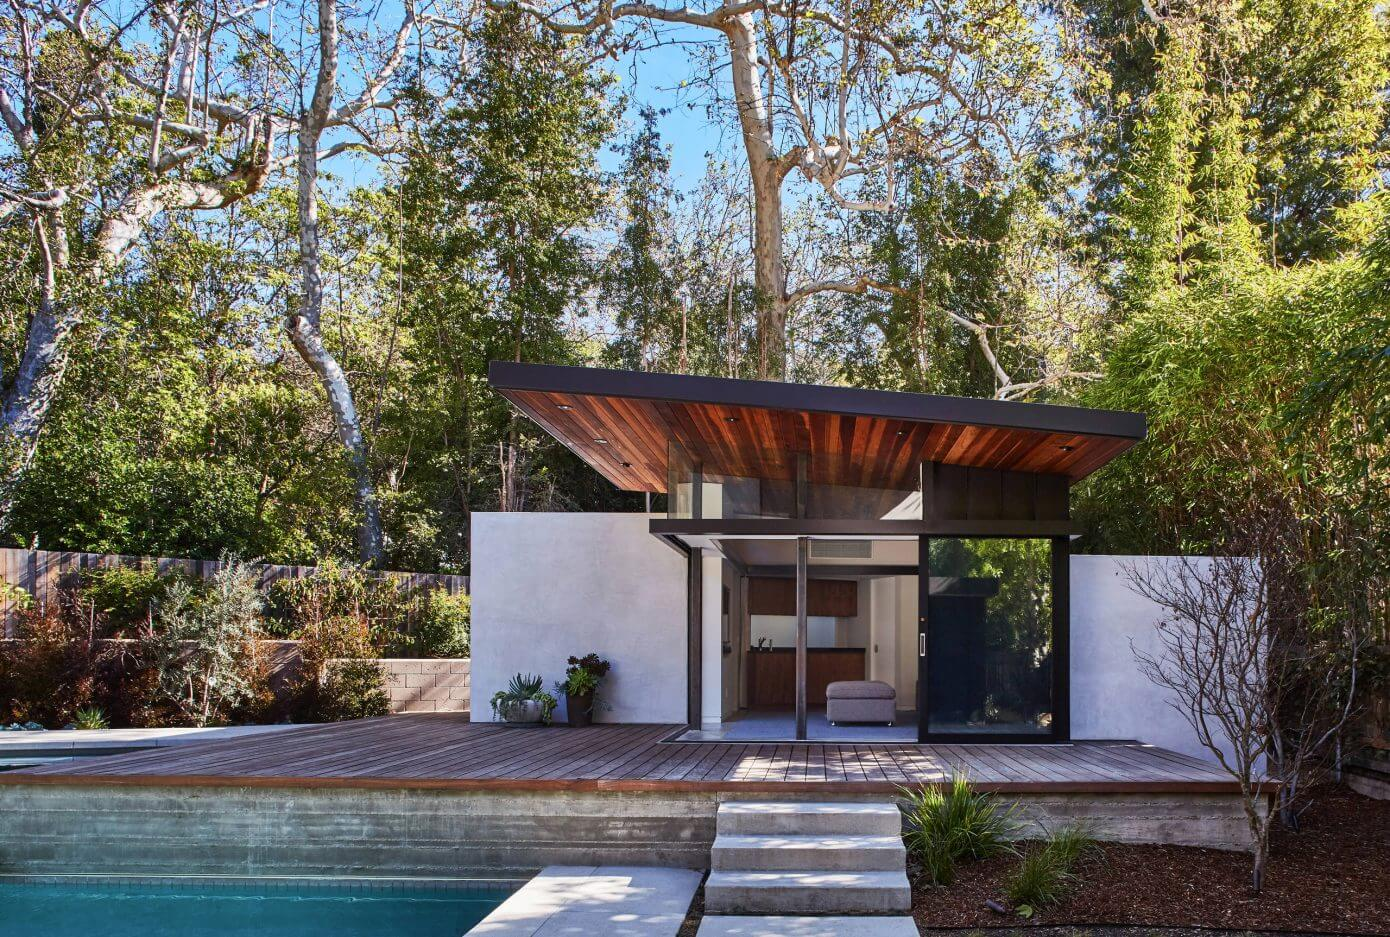 Mandeville Canyon Home by Jesse Bornstein